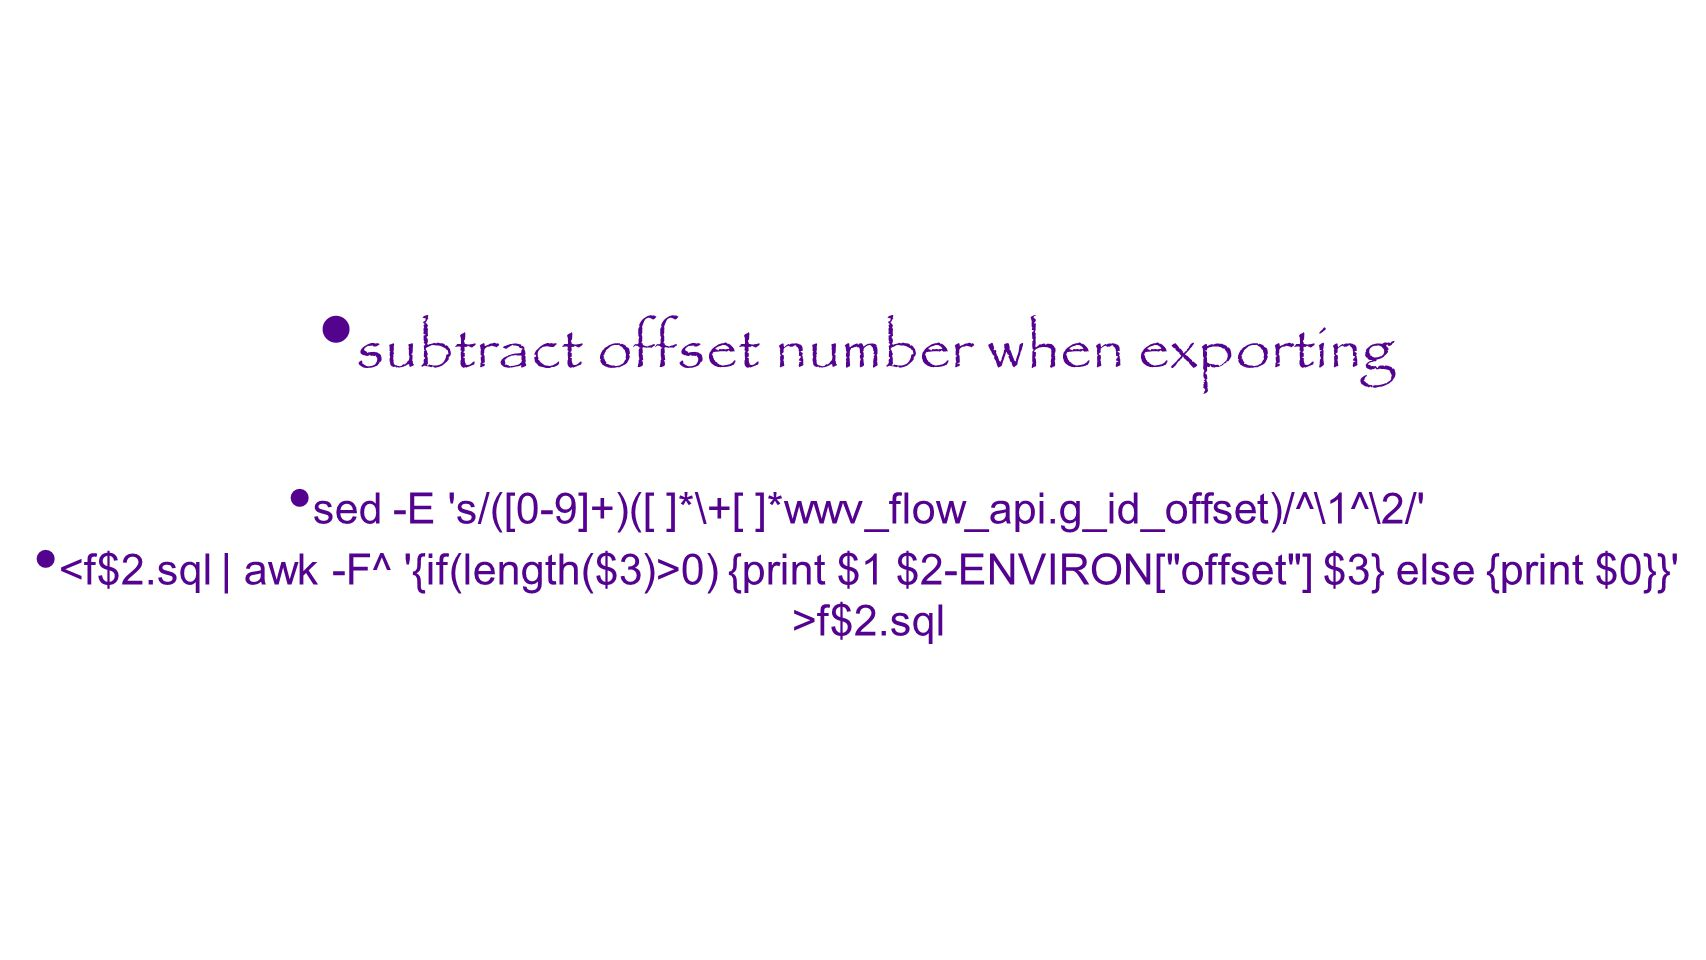 subtract offset number when exporting sed -E 's/([0-9]+)([ ]*\+[ ]*wwv_flow_api.g_id_offset)/^\1^\2/' 0) {print $1 $2-ENVIRON[